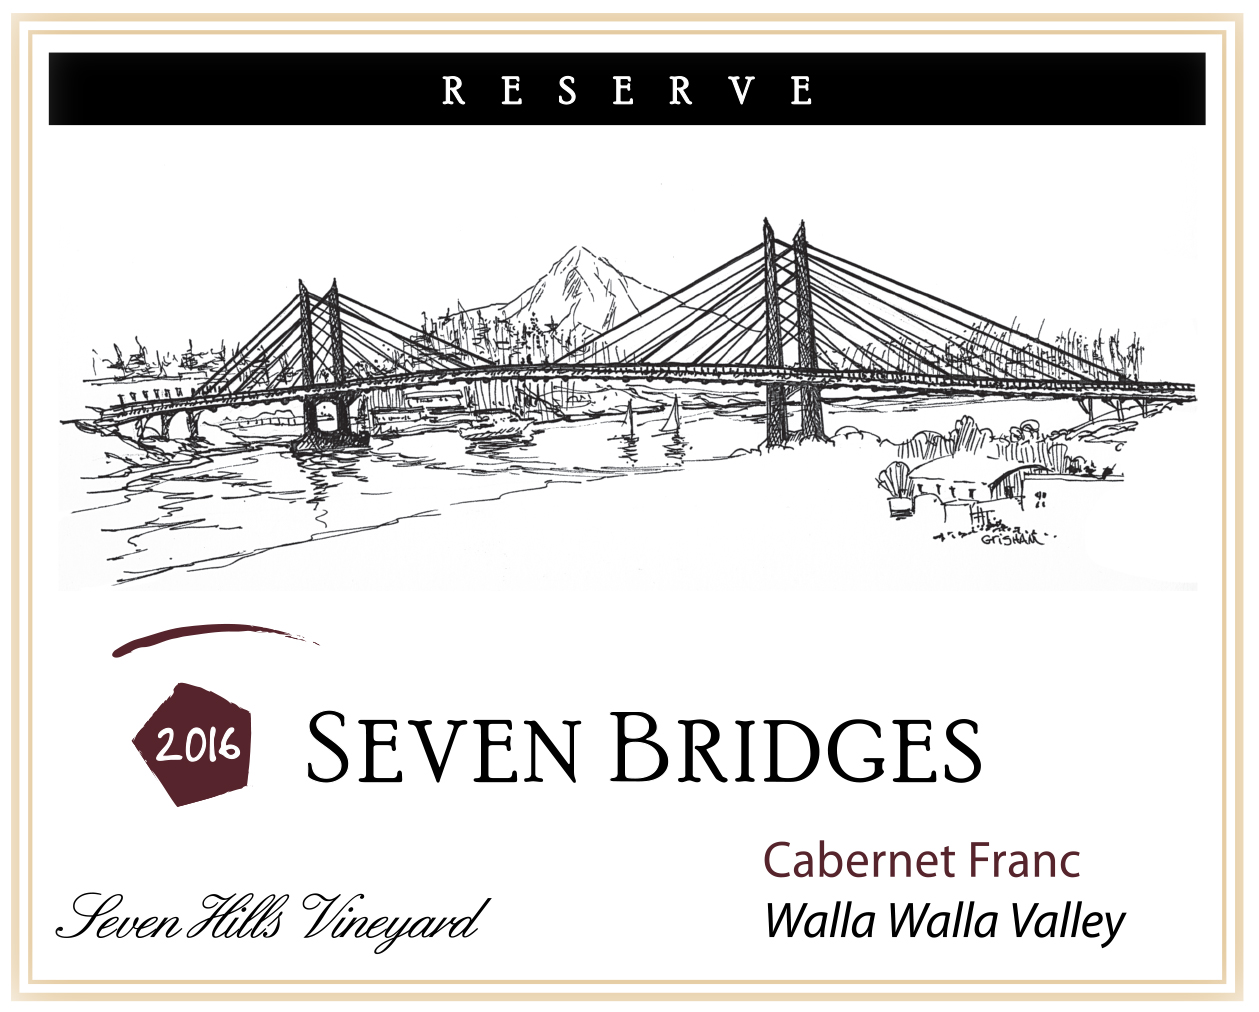 Product Image for 2016 Cabernet Franc Reserve